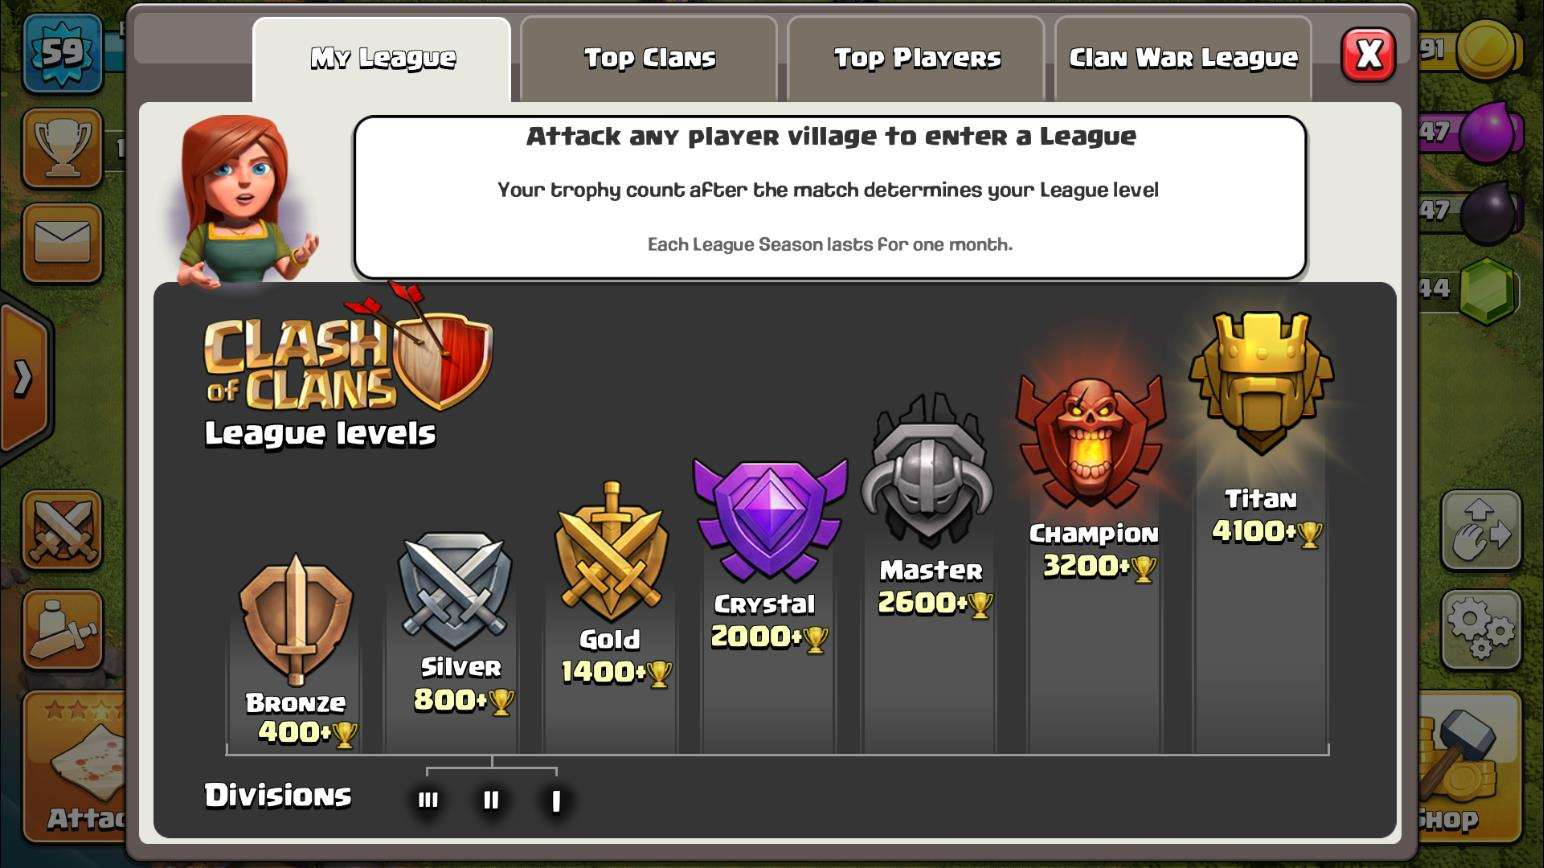 Clash of Clans League structure